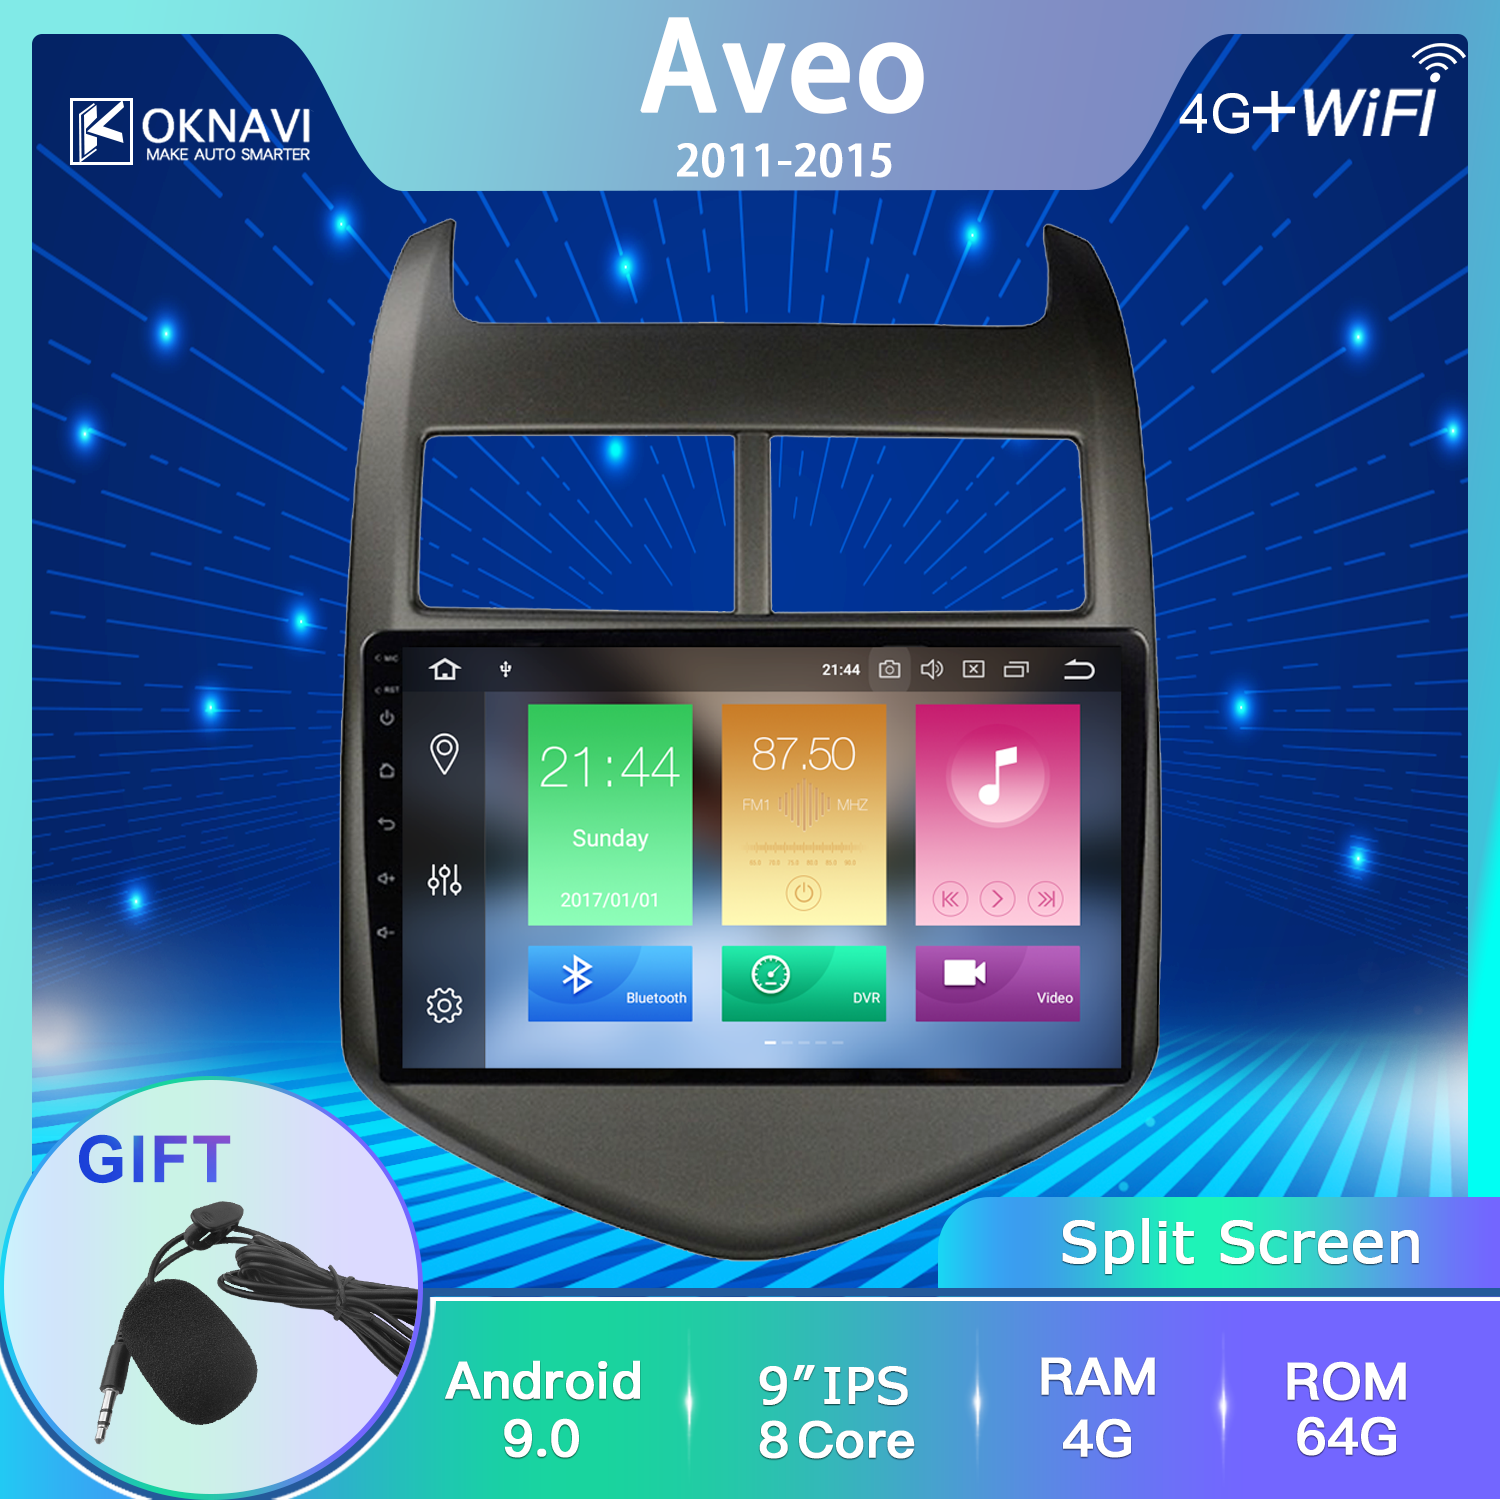 OKNAVI <font><b>Car</b></font> <font><b>Radio</b></font> Android 9.0 Multimedia Player Stereo No <font><b>2</b></font> <font><b>Din</b></font> Gps Bluetooth <font><b>For</b></font> <font><b>Chevrolet</b></font> <font><b>Aveo</b></font> 2011-2013 Support DVR OBD Camera image